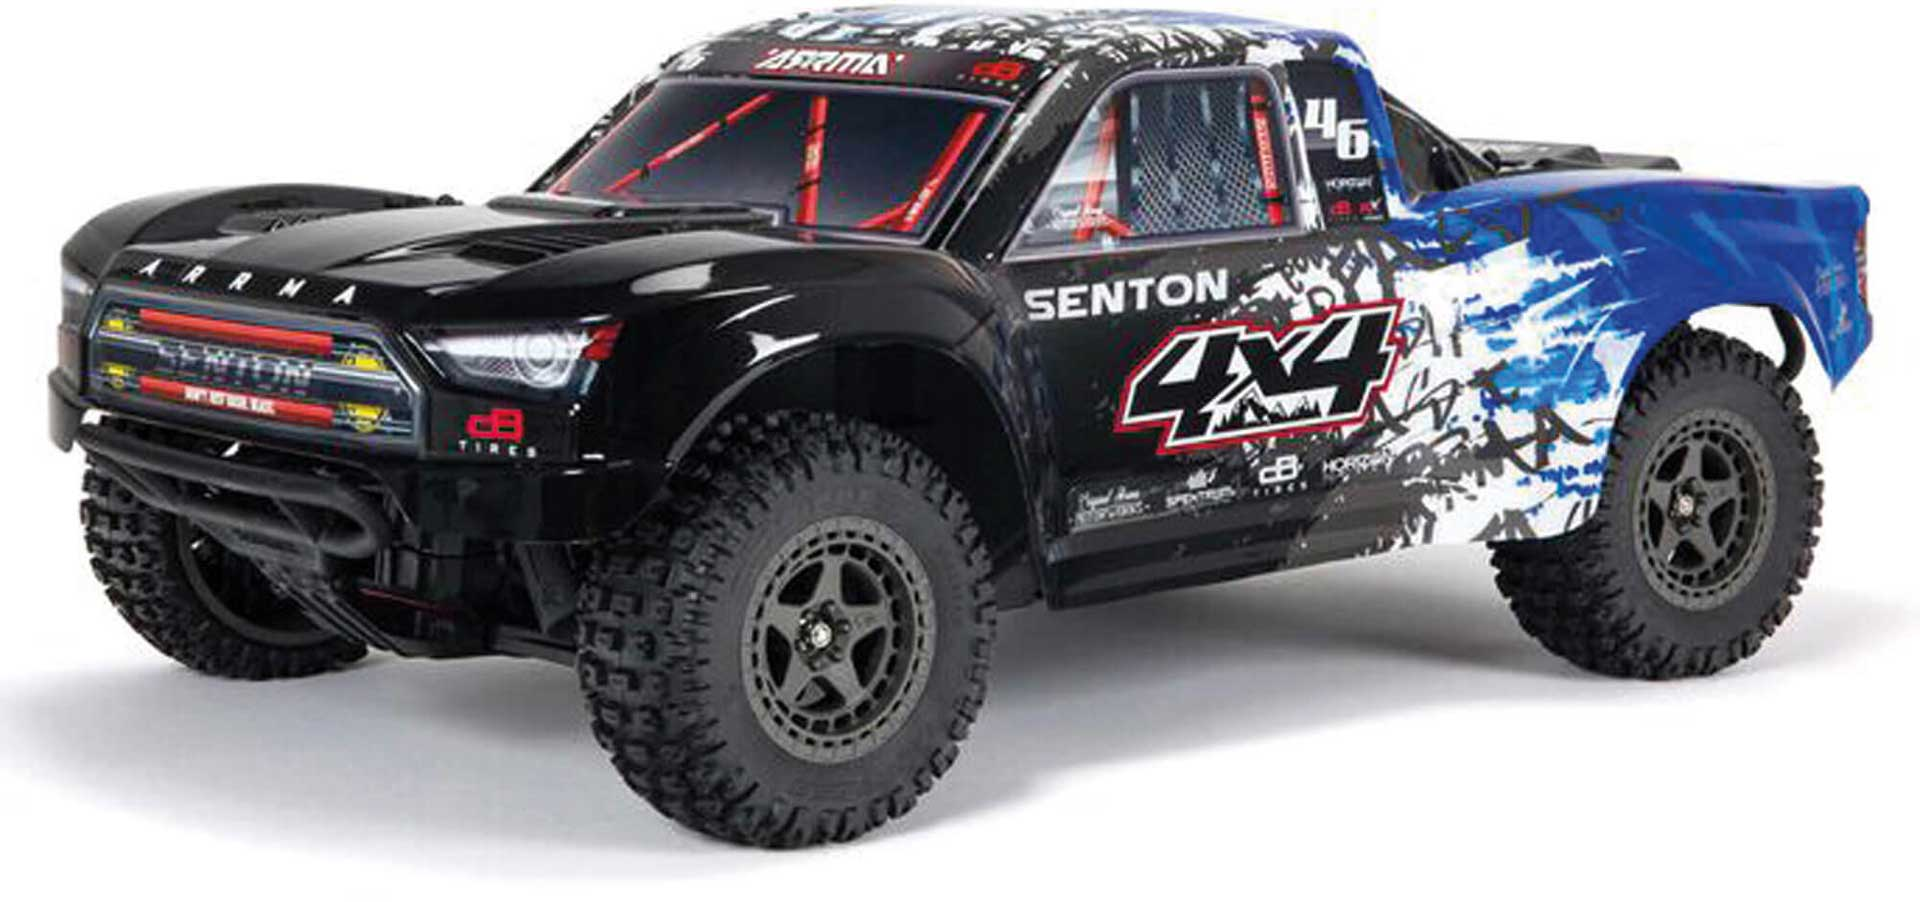 ARRMA SENTON 4X4 3S BLX Brushless 1/10th 4wd SC Color1